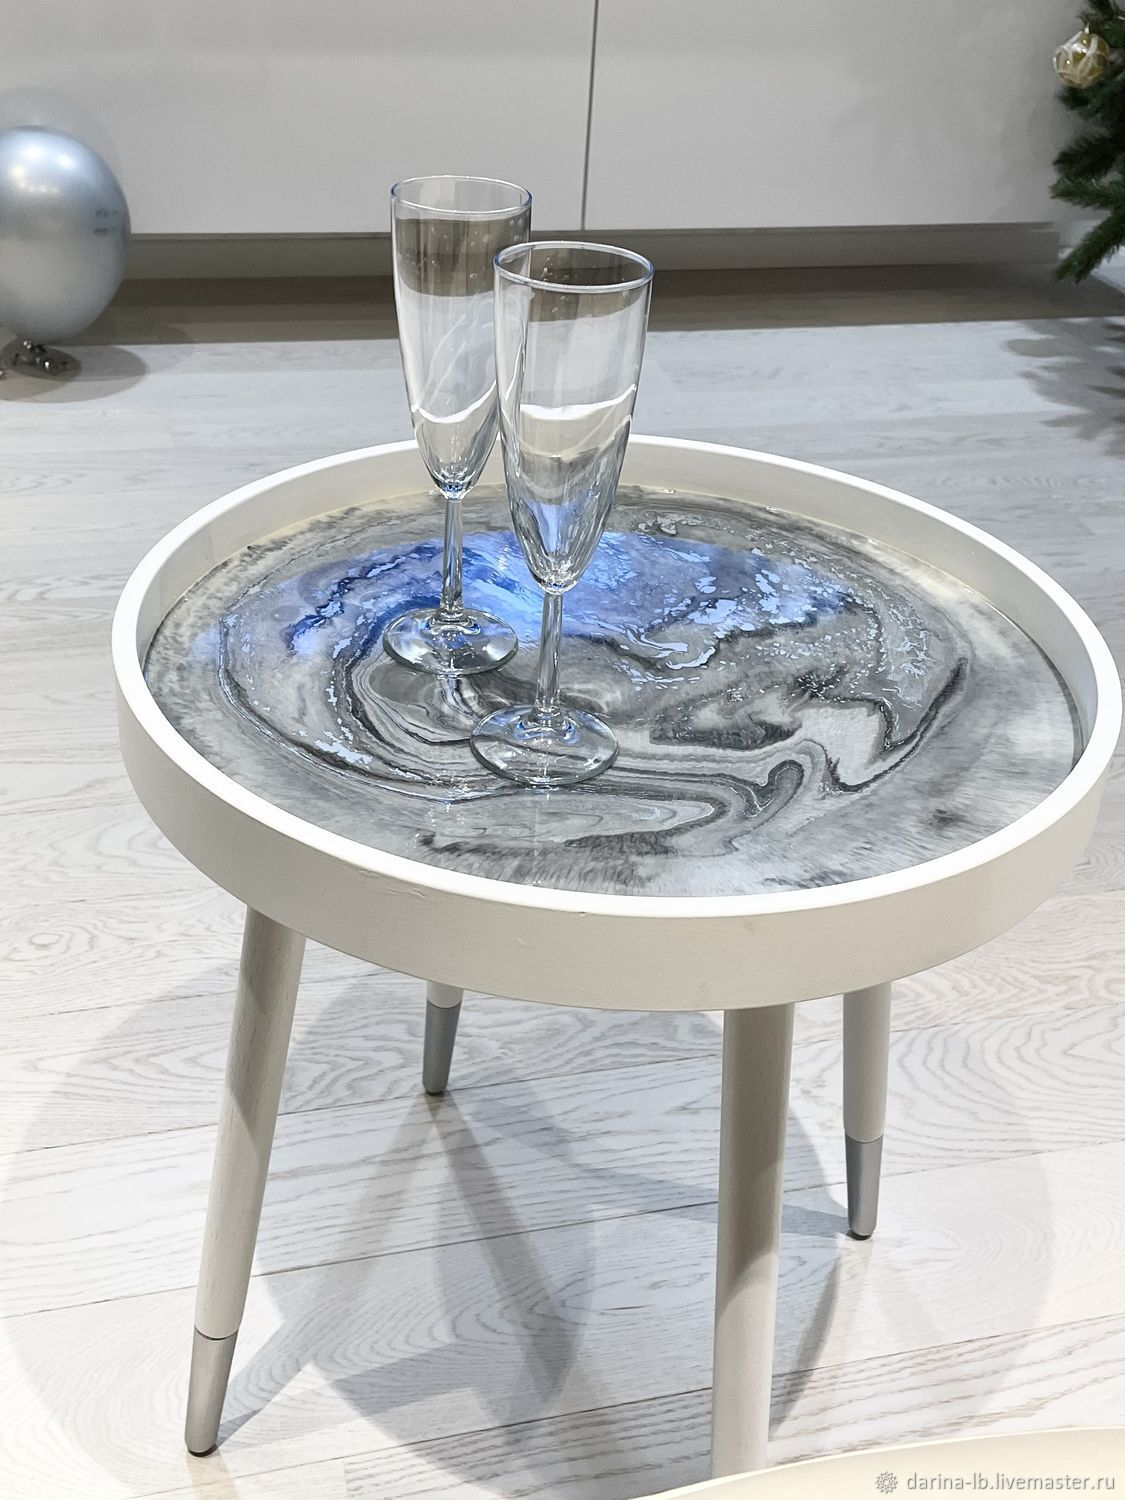 Round table made of epoxy resin, Tables, Moscow,  Фото №1